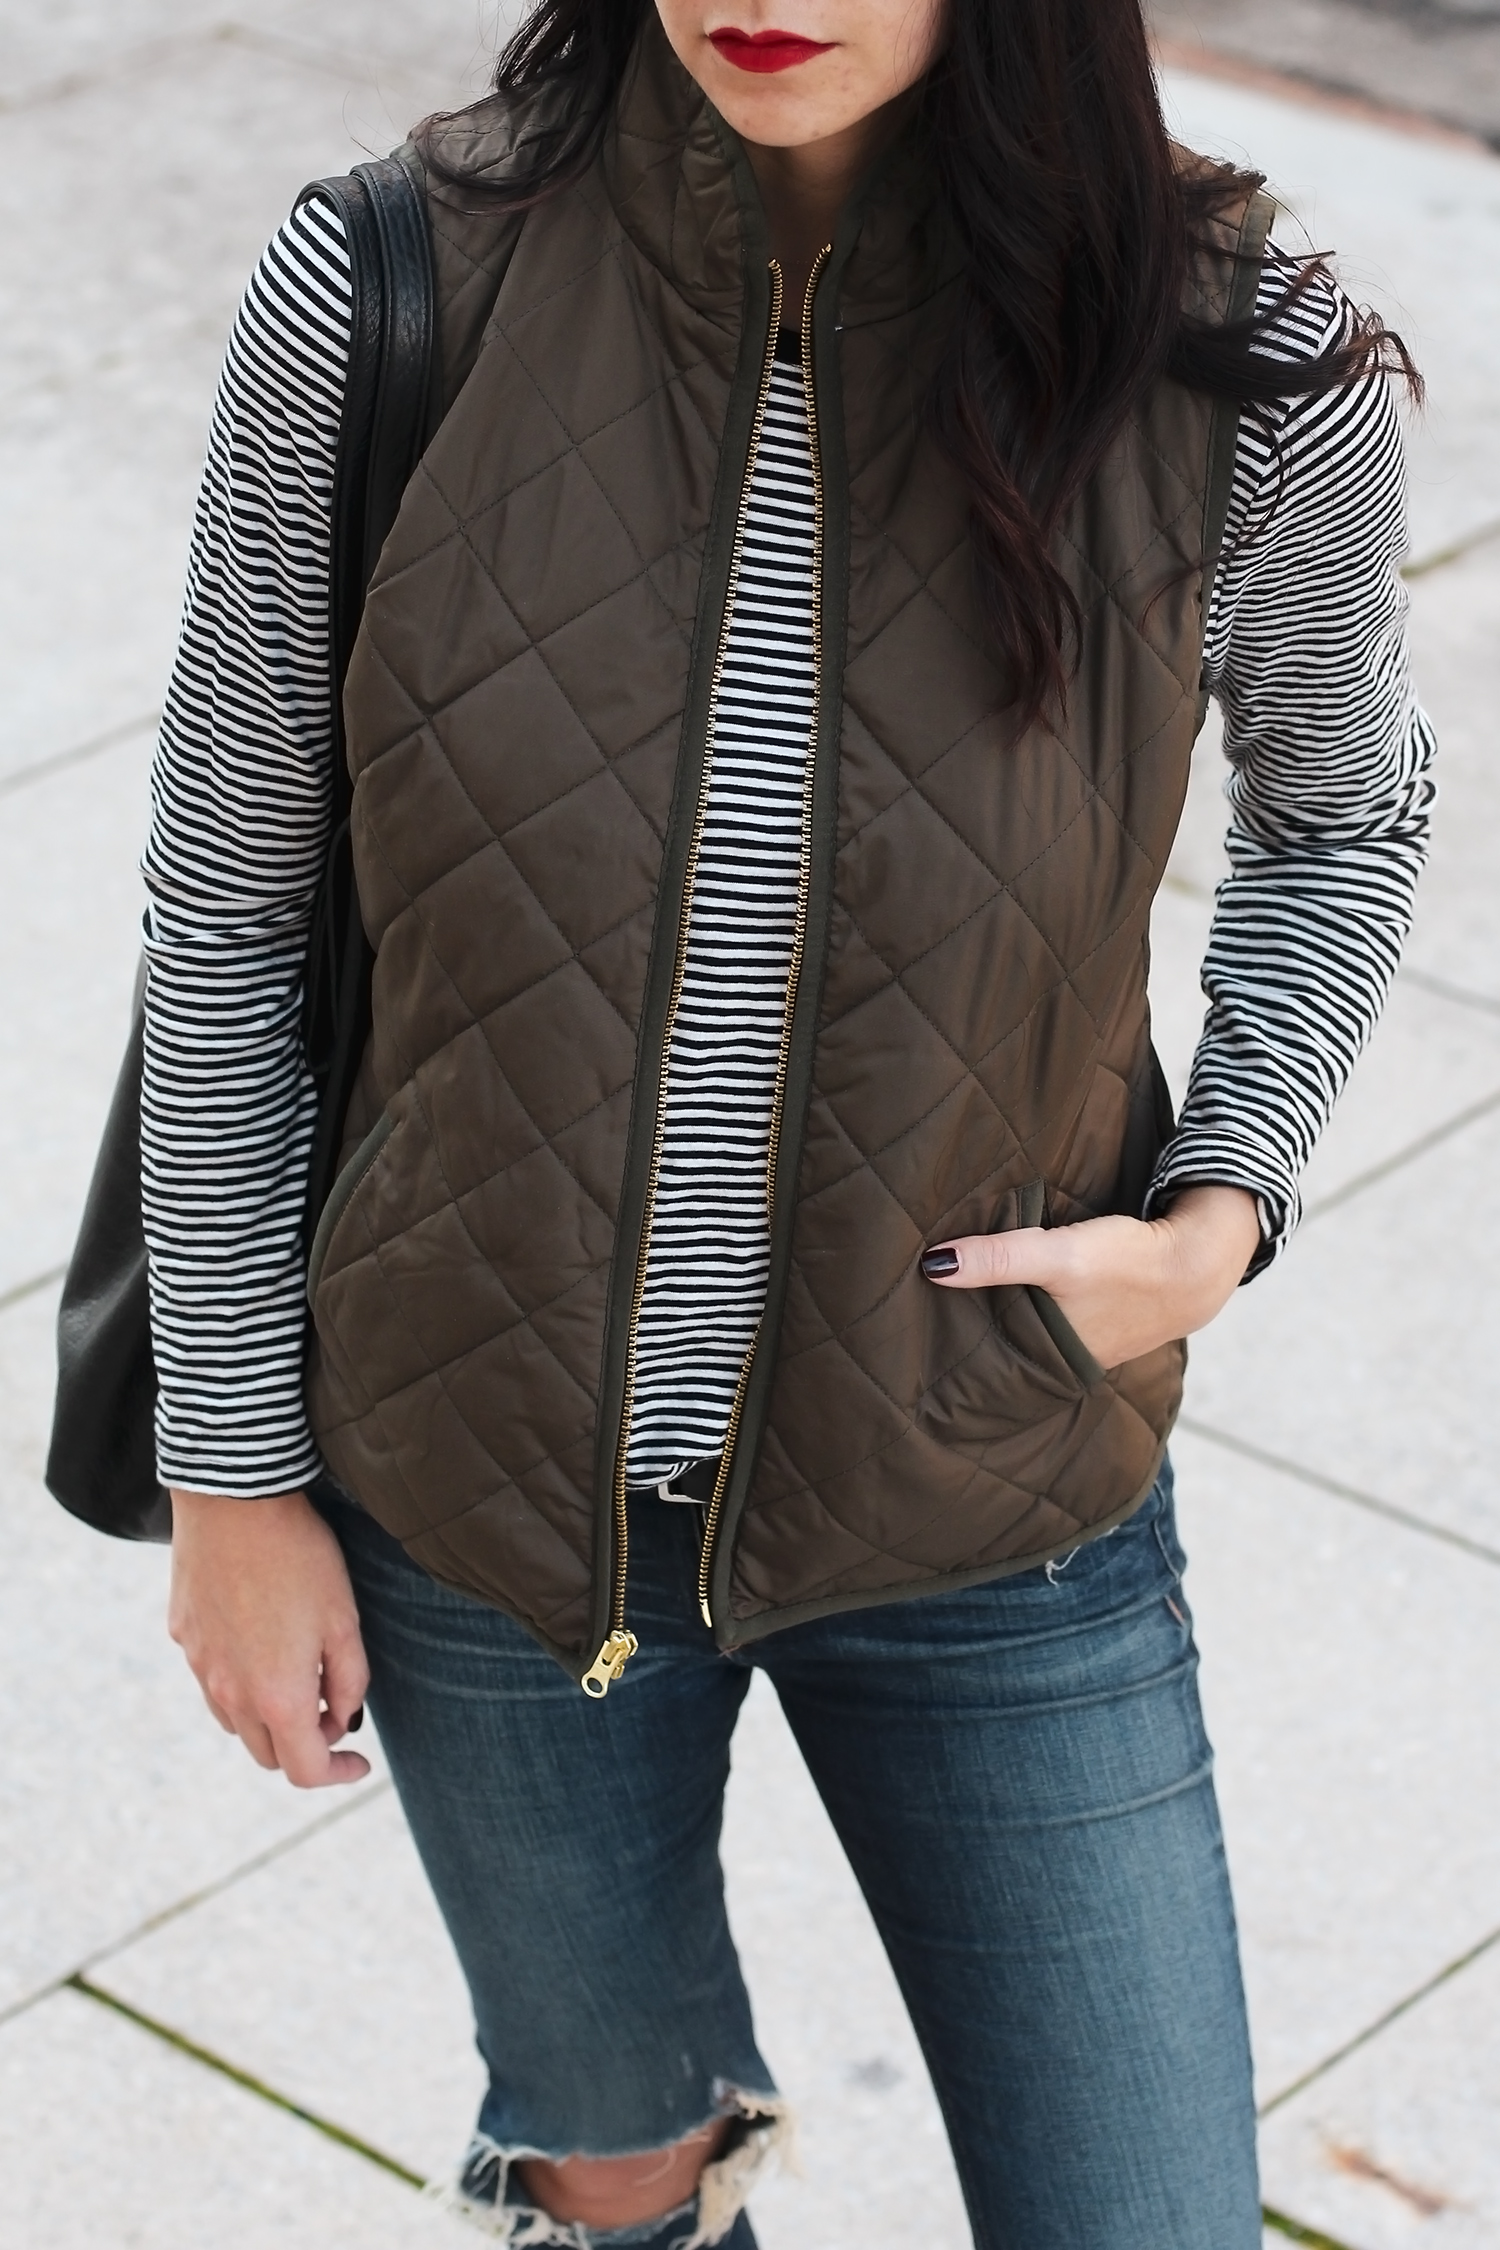 Old Navy Vest, Weekend Outfit